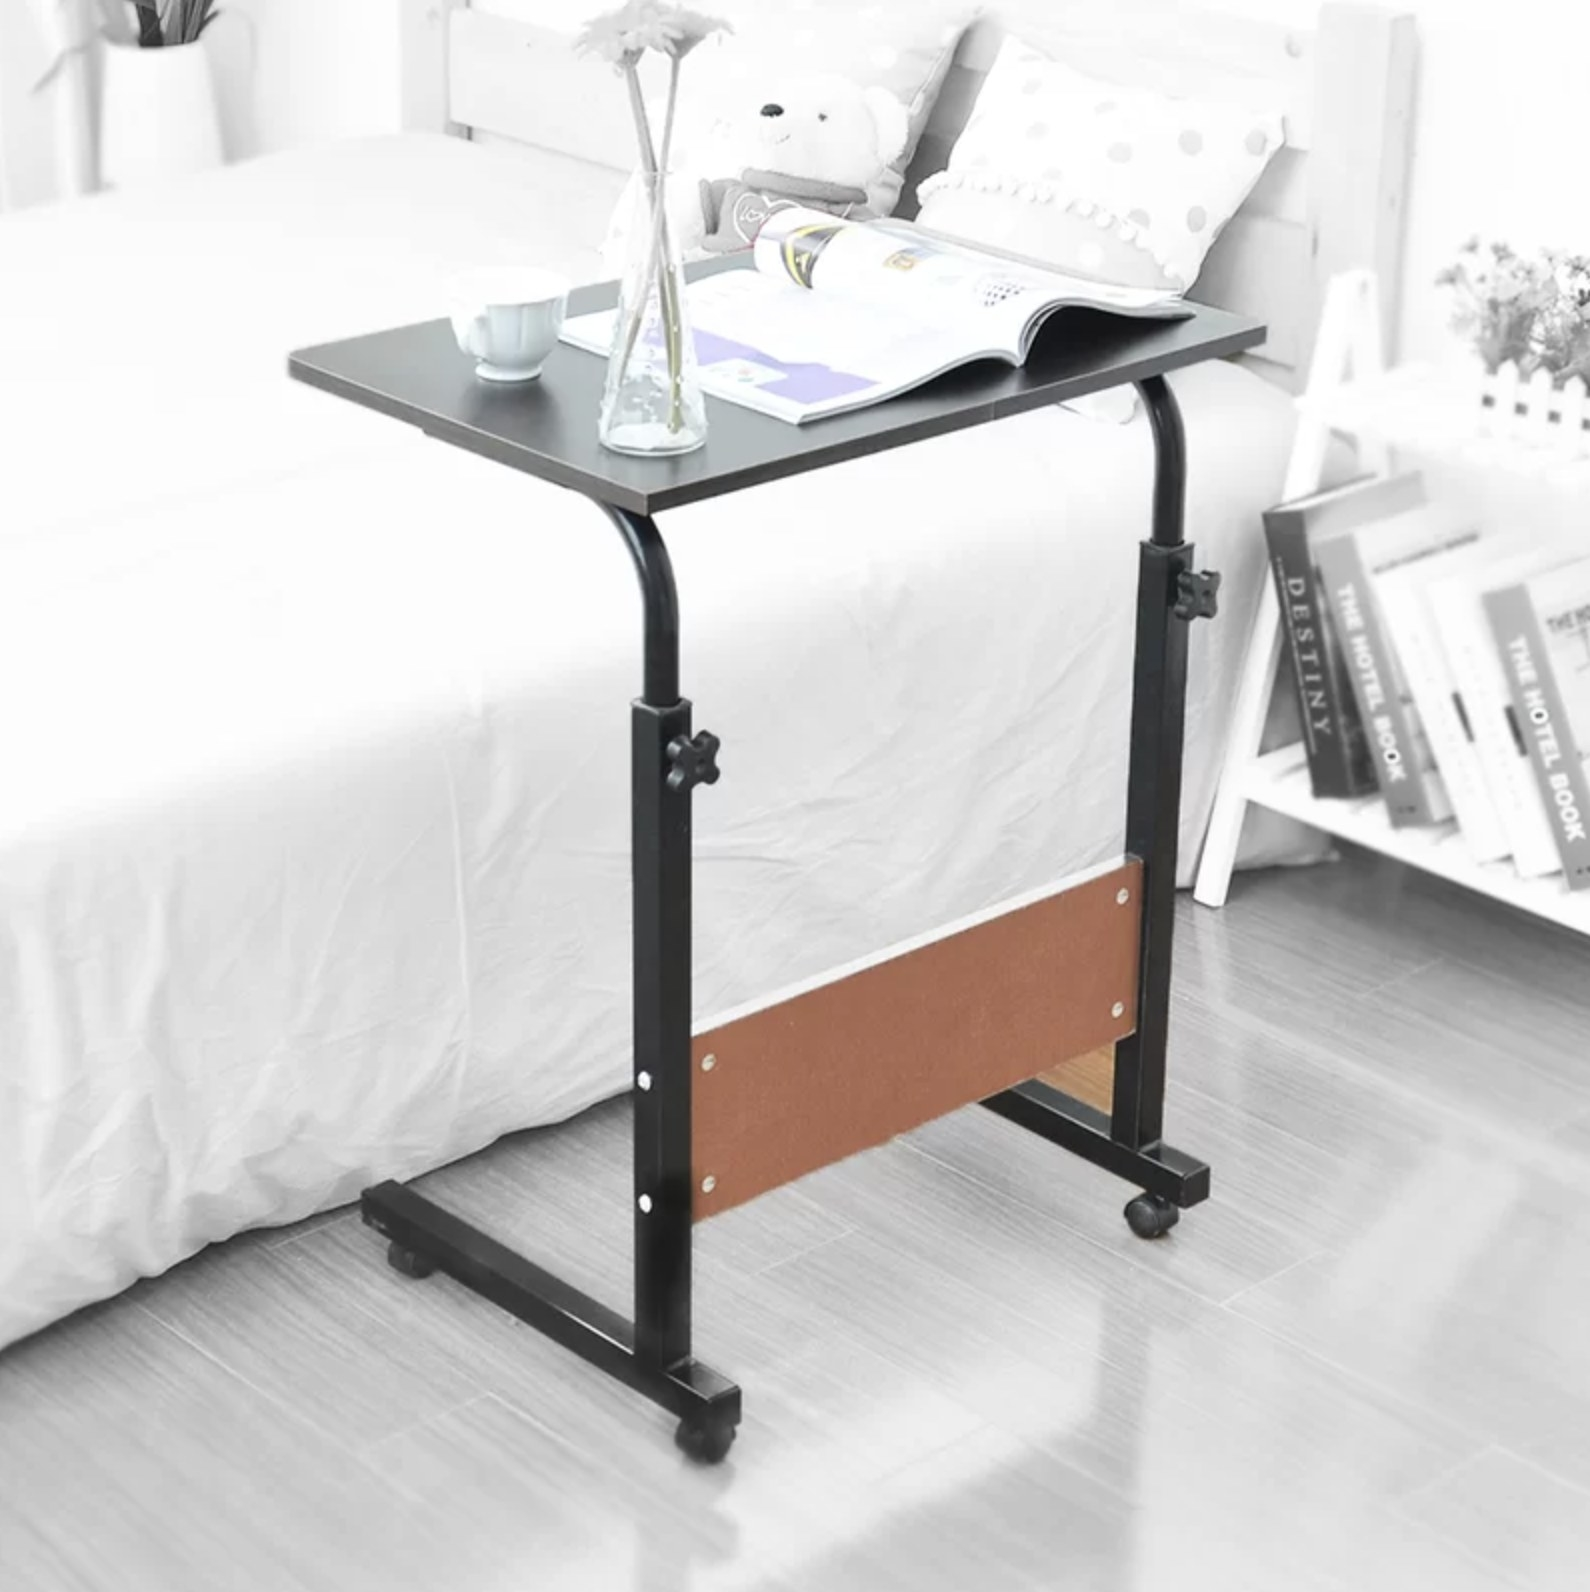 The laptop stand in a bedroom